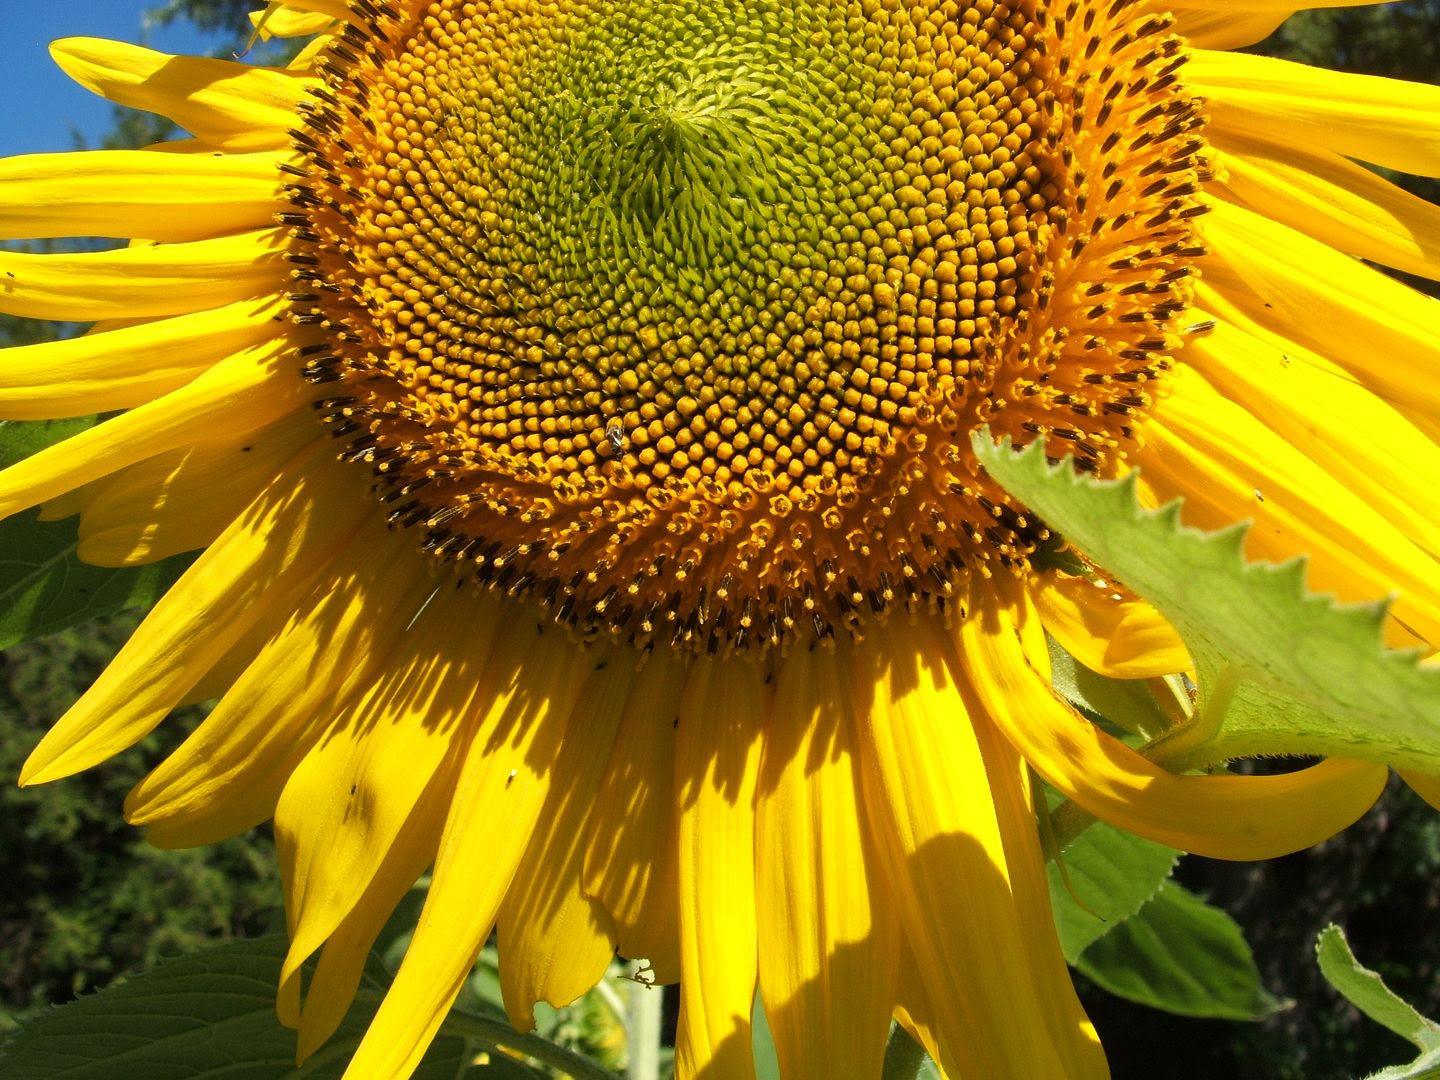 Giant Gray Stripe Sunflower by Angie Ouellette-Tower for godsgrowinggarden.com photo 014_zps4c72c77f.jpg